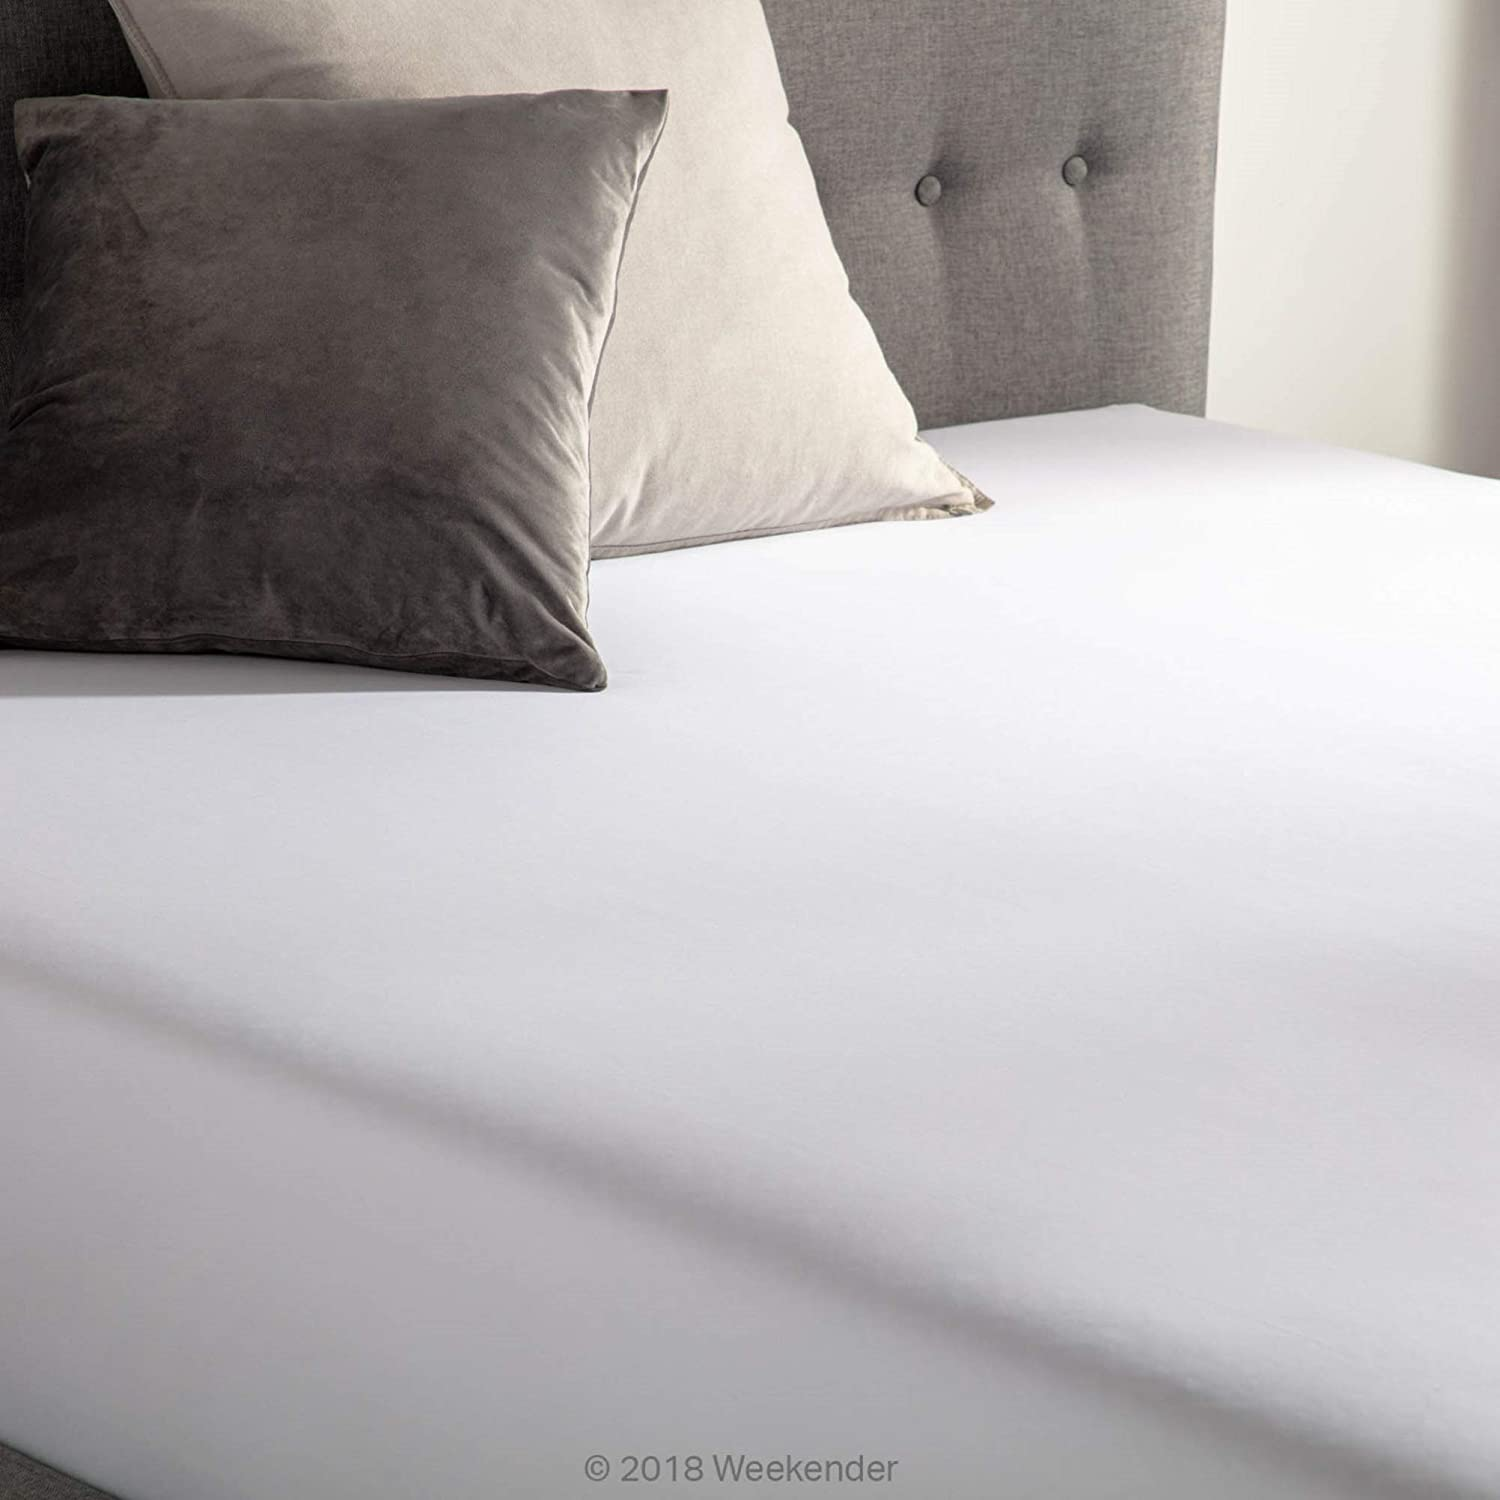 Full XL WEEKENDER 200 Thread Count Hotel Fitted Sheet White Cotton Rich Blend